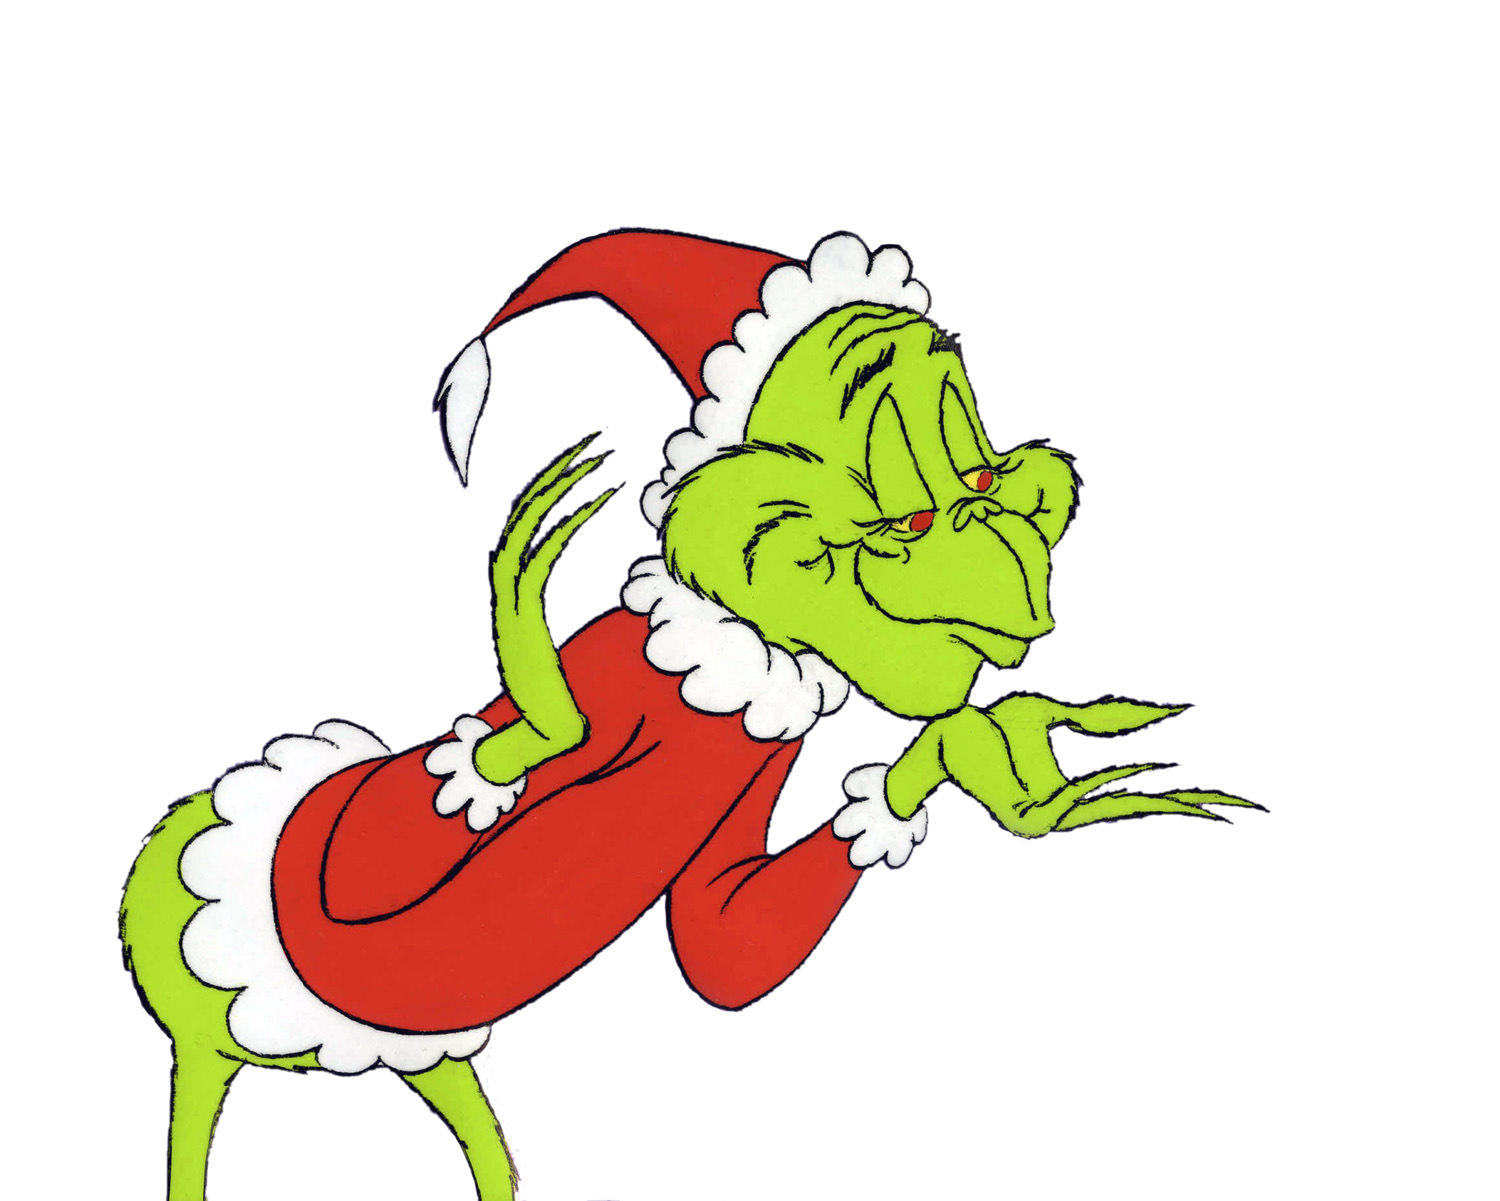 How The Grinch Stole Christmas 1966 Max.Christmas Trivia 33 Facts You Didn T Know About The Grinch